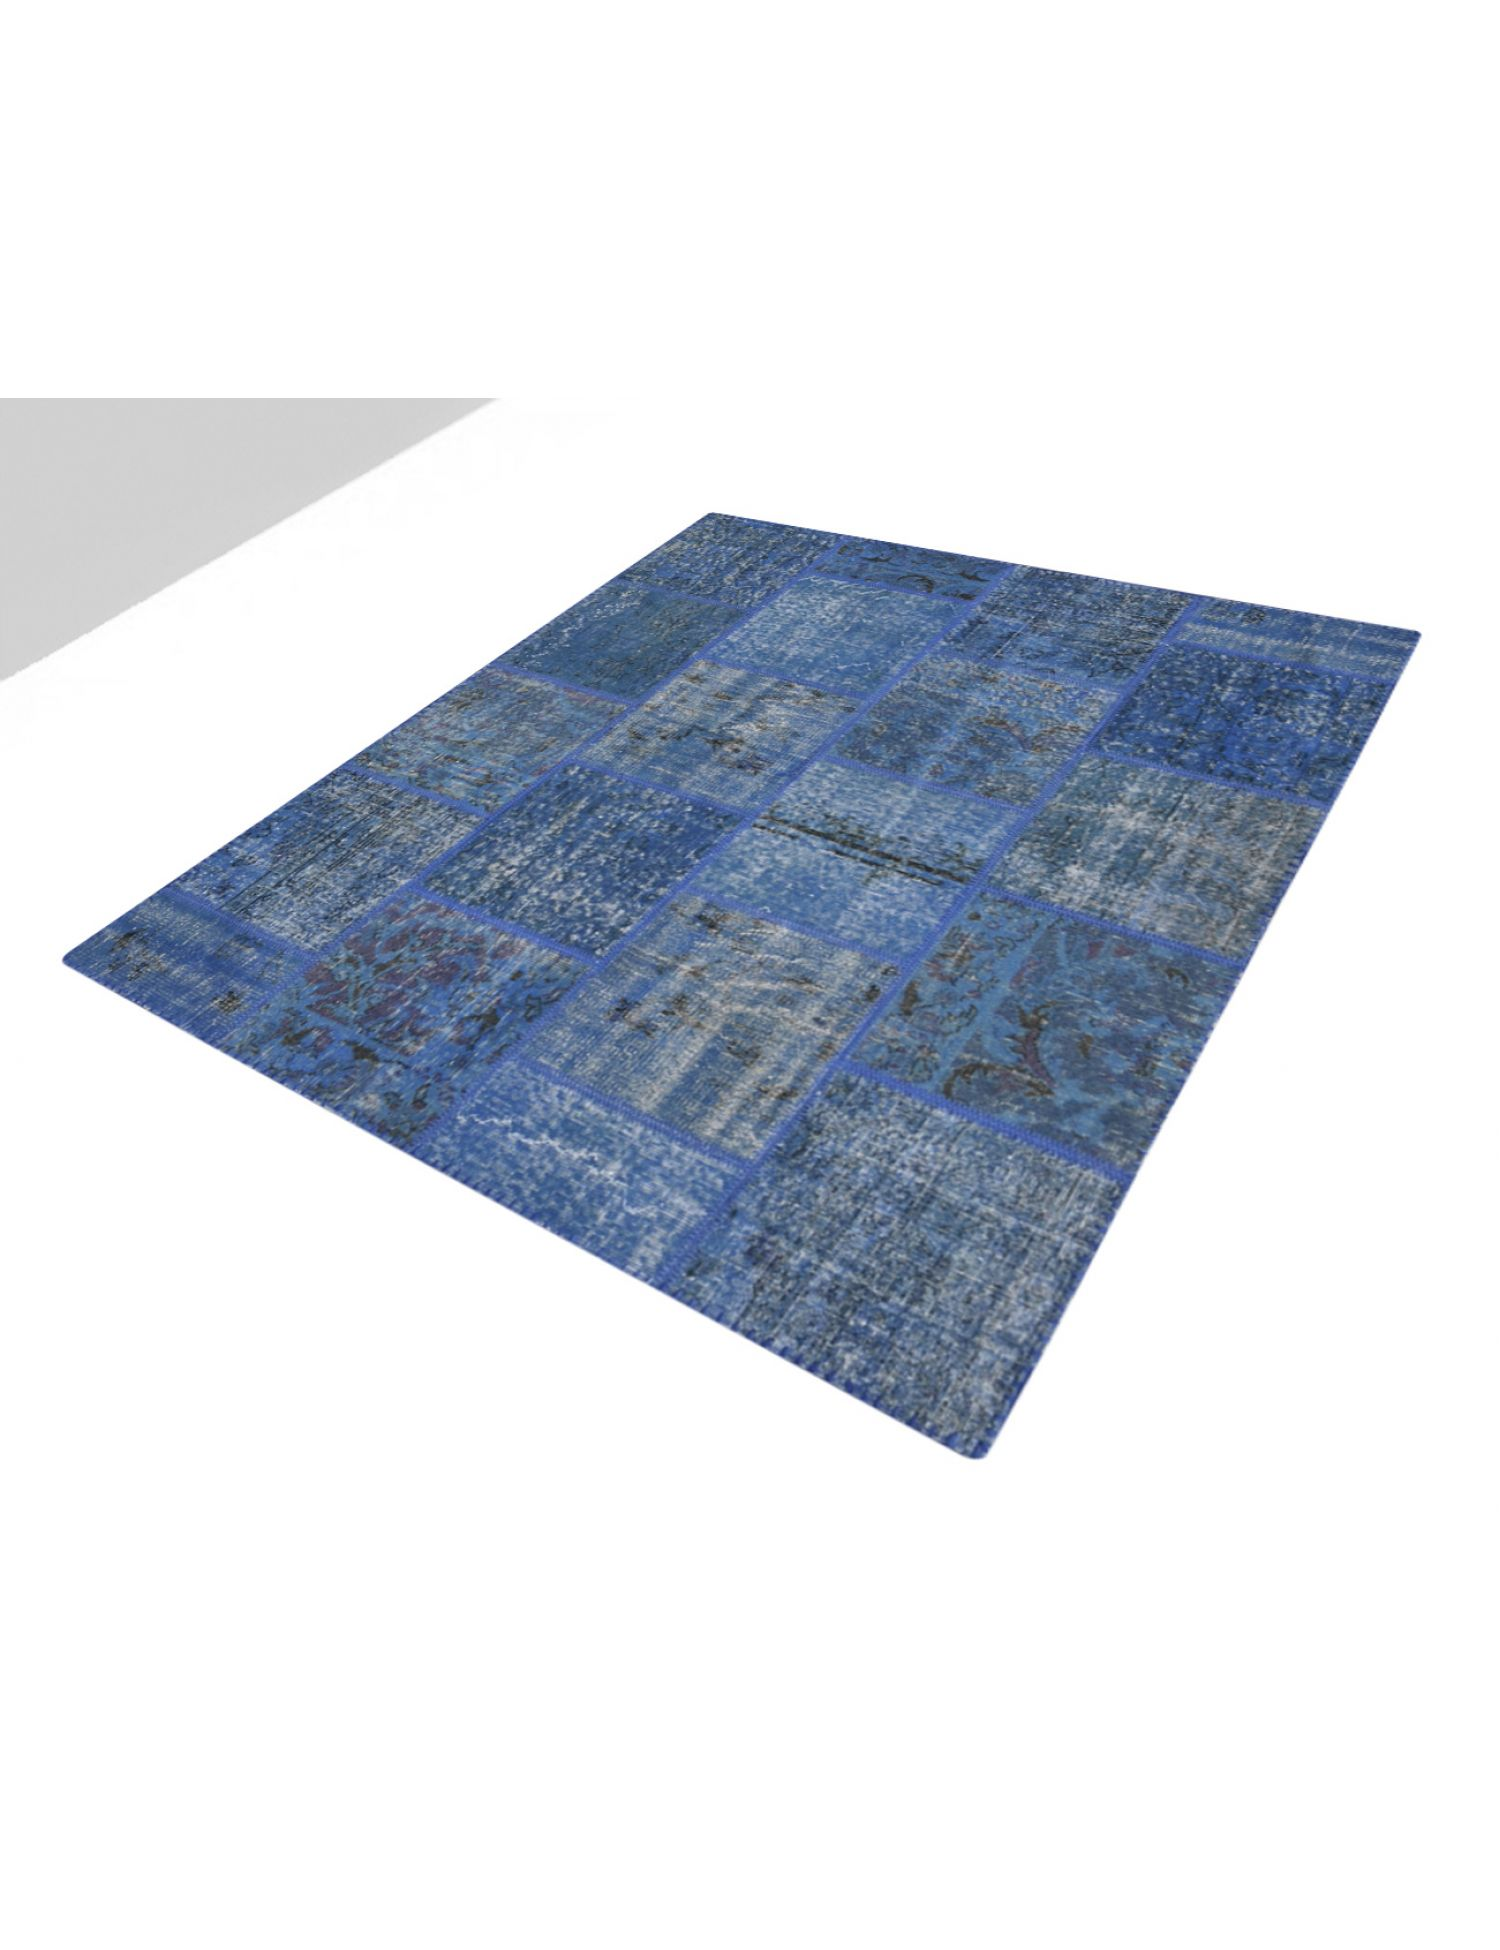 Patchwork Carpet   blue <br/>200 x 150 cm